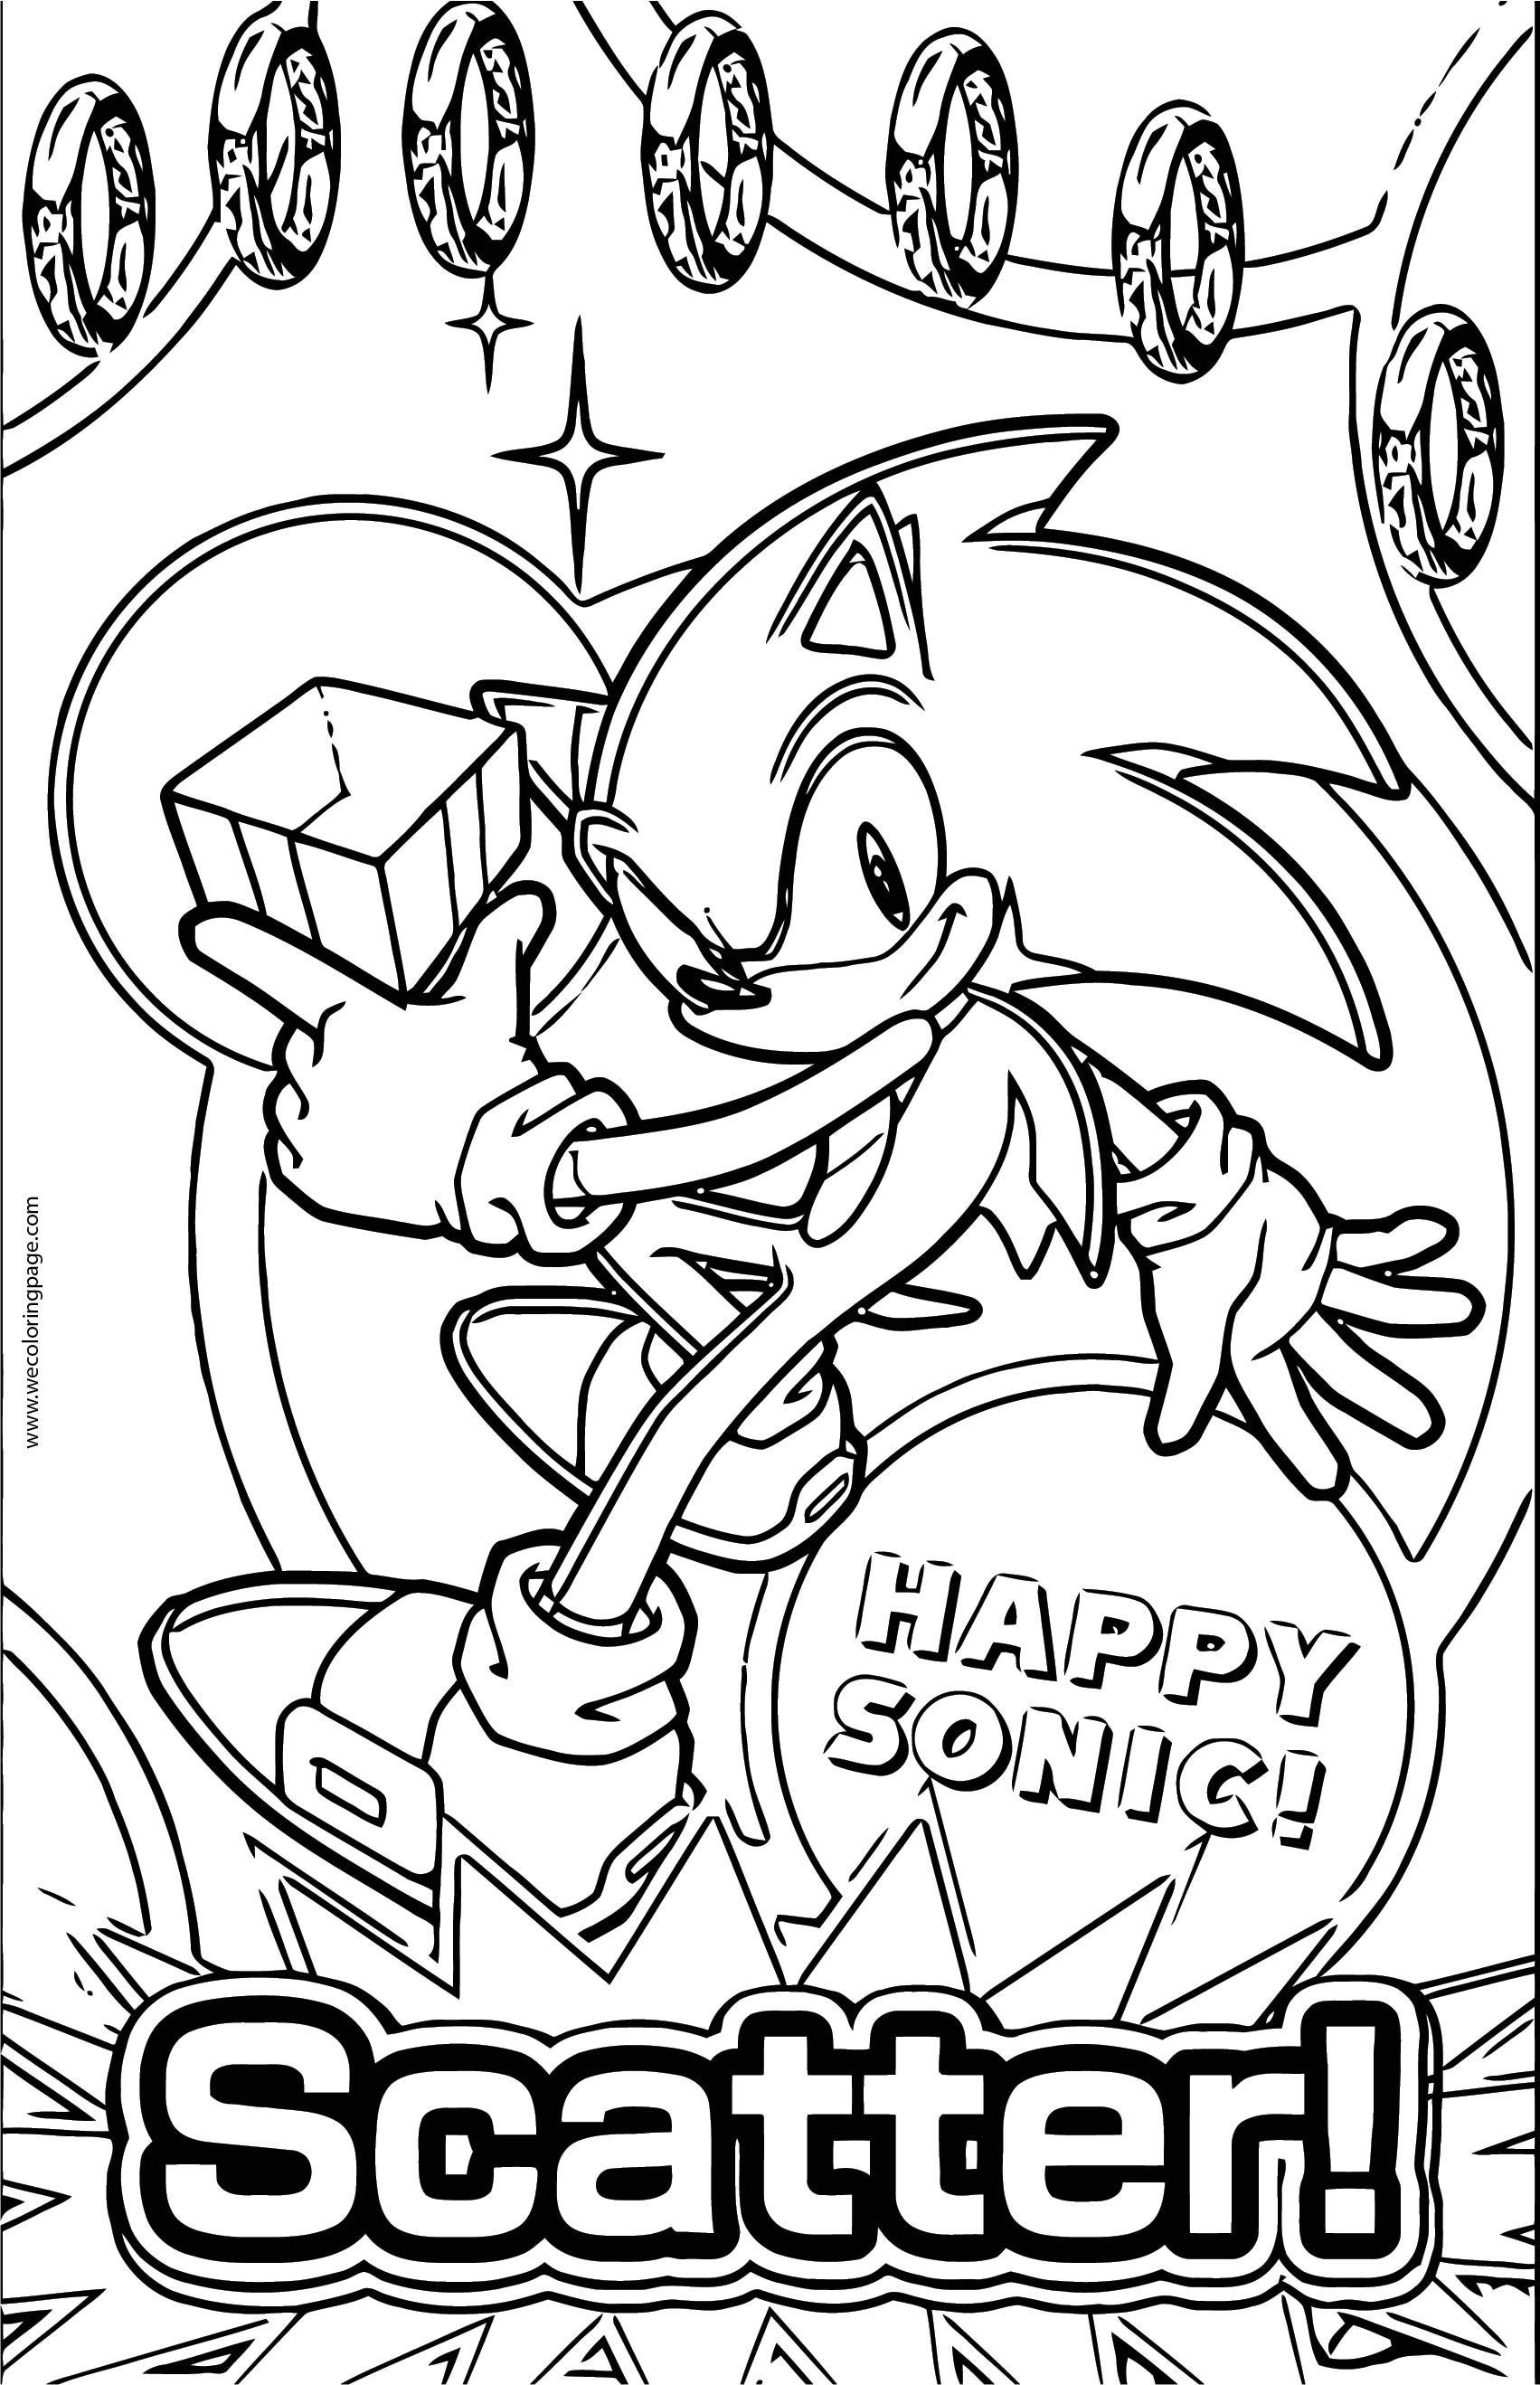 Scatter Sonic The Hedgehog Coloring Page